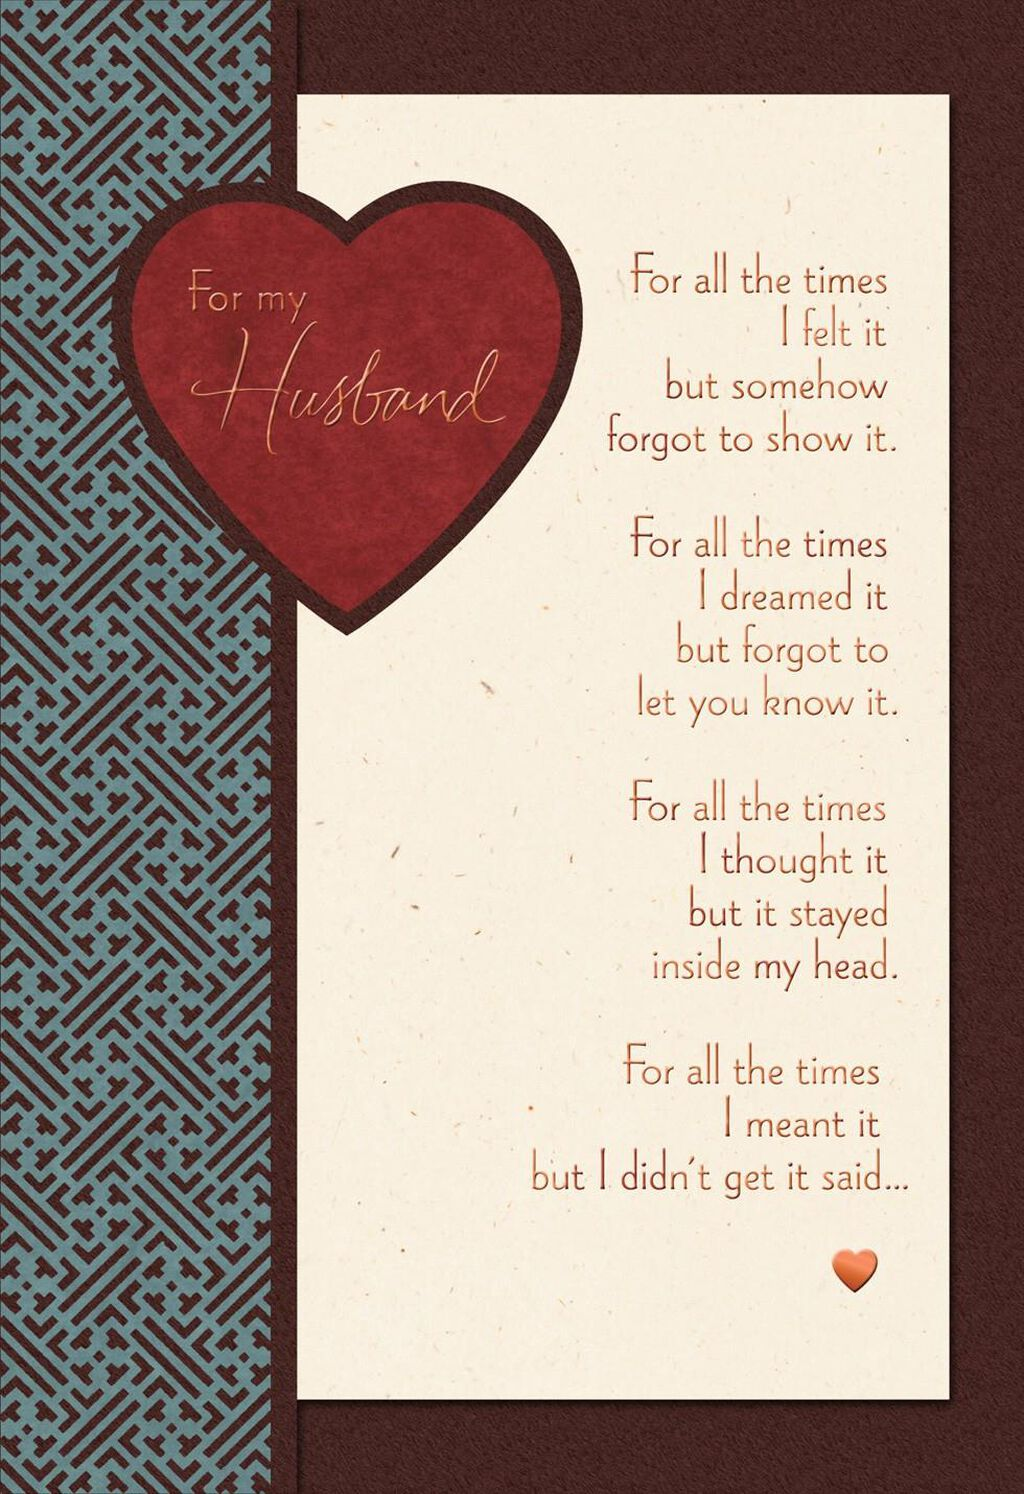 for all the times sweetest day card for husband - greeting cards